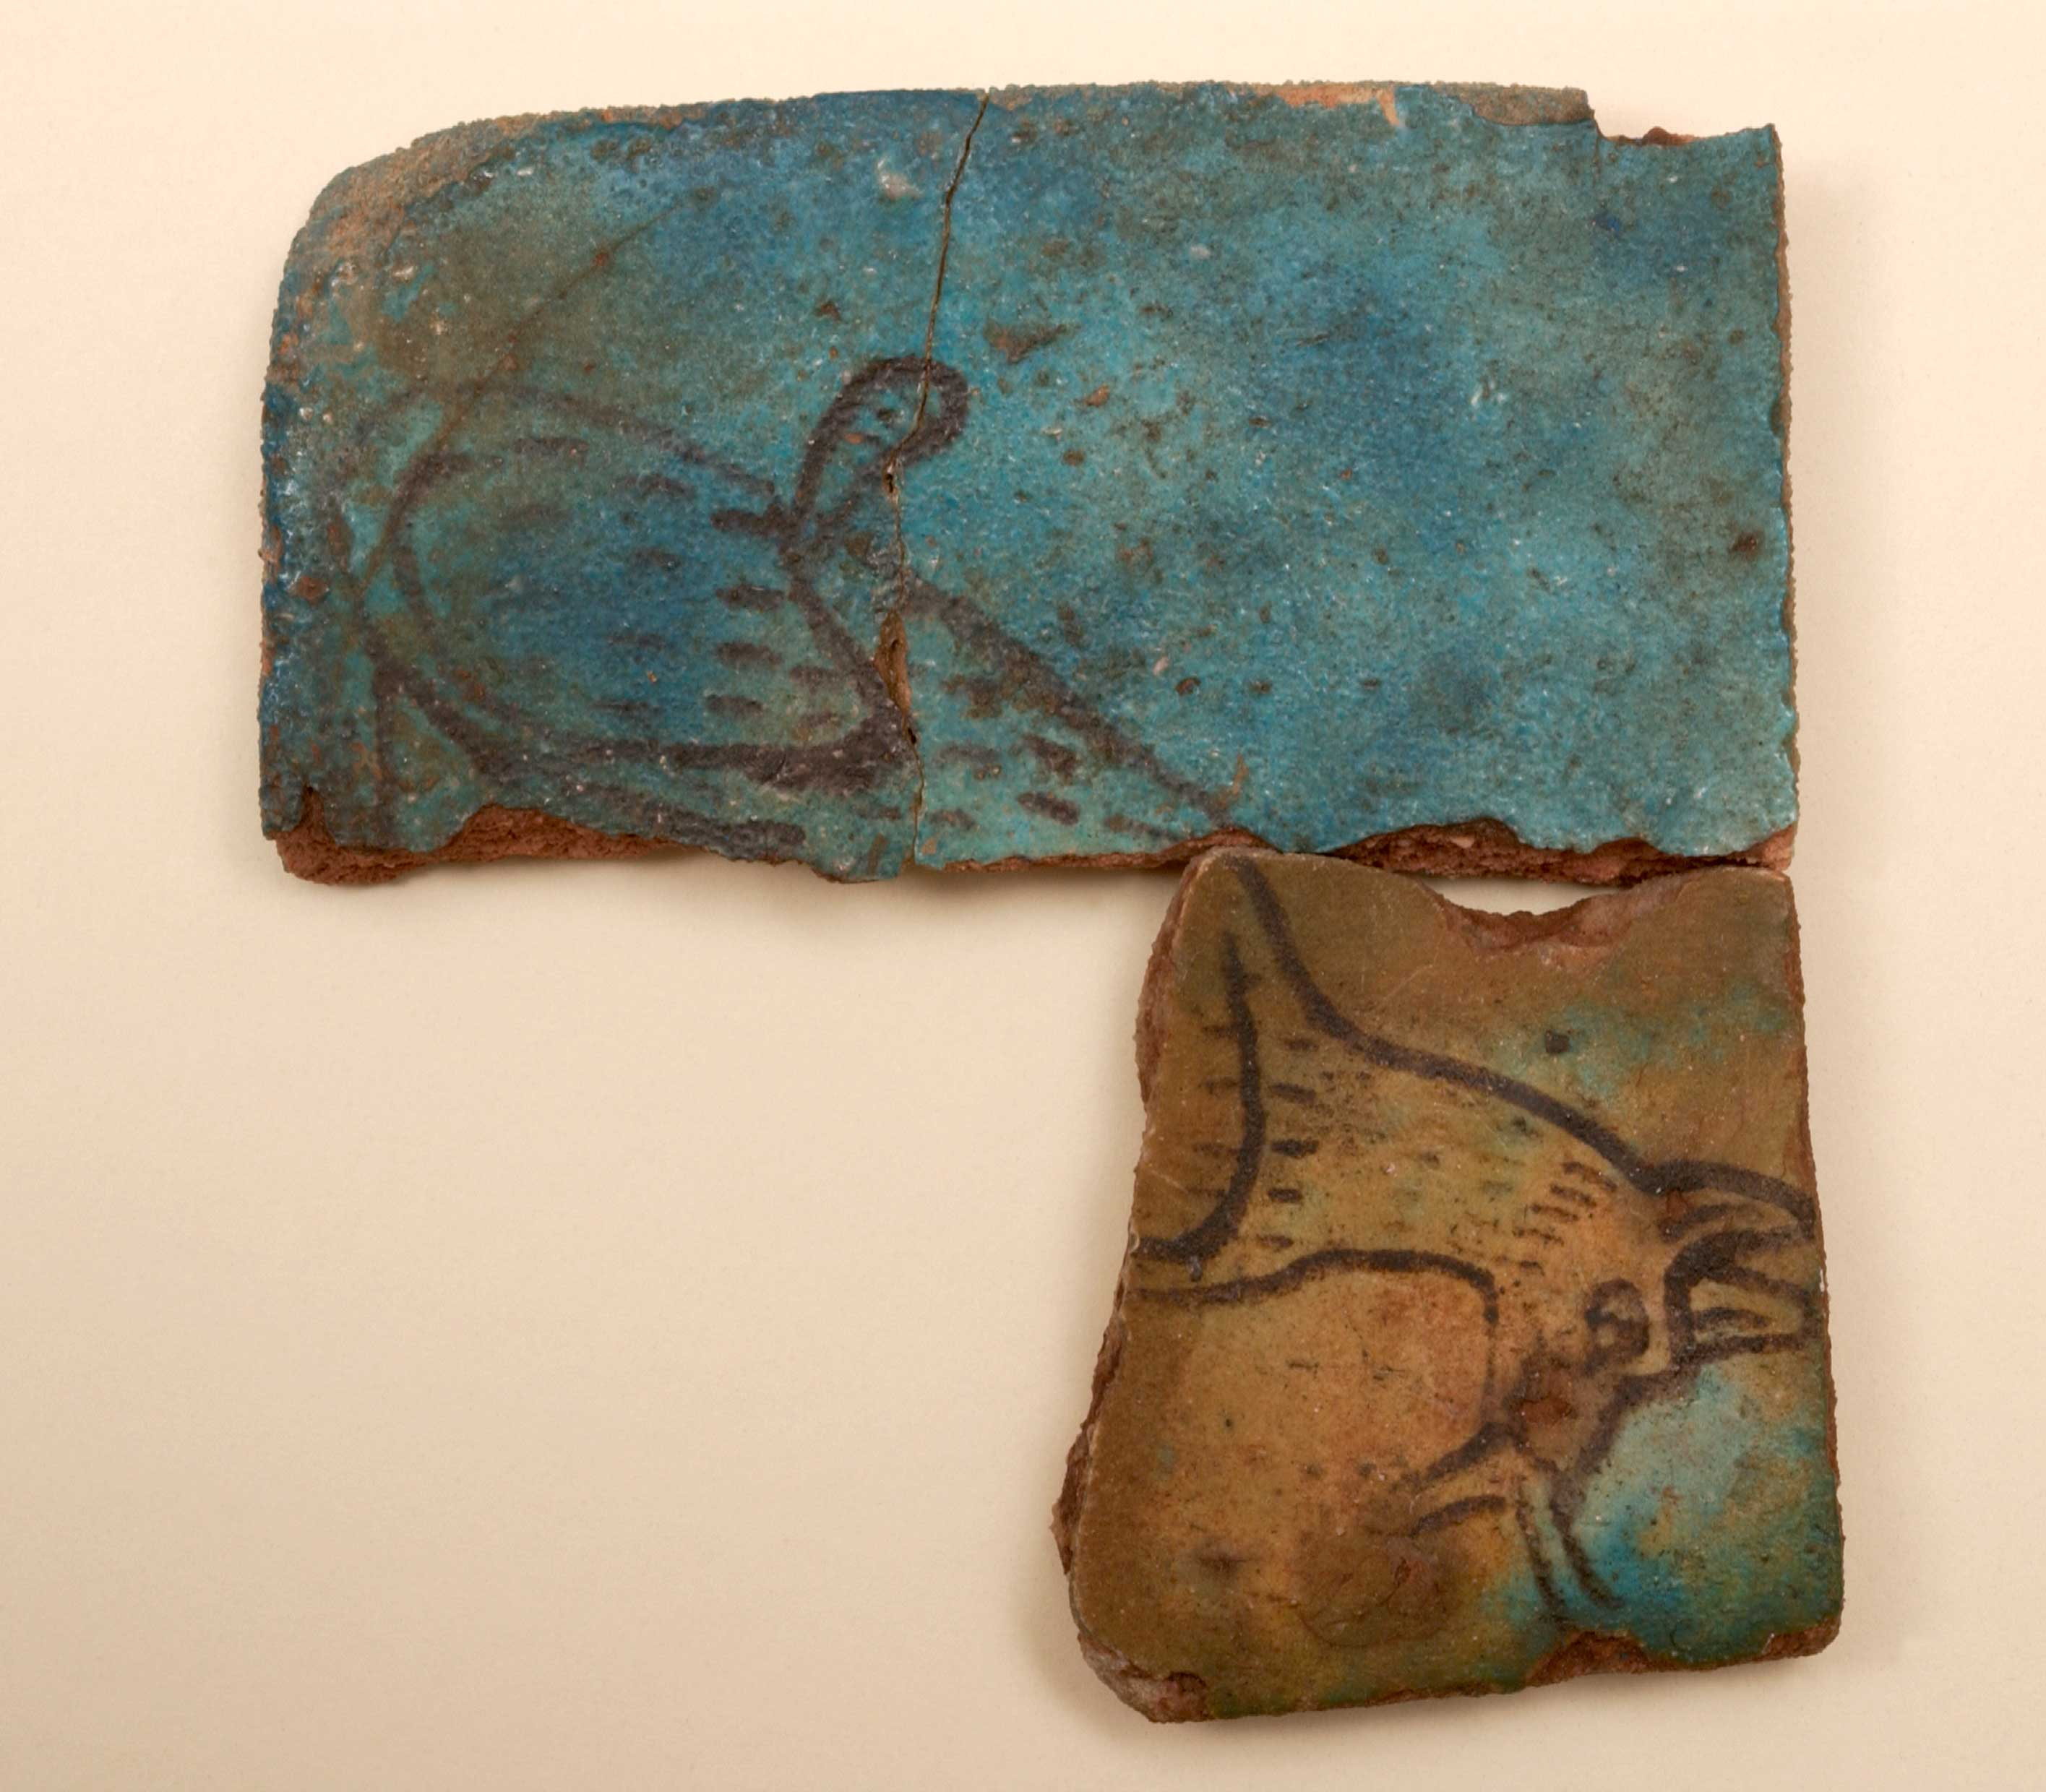 Tile fragments